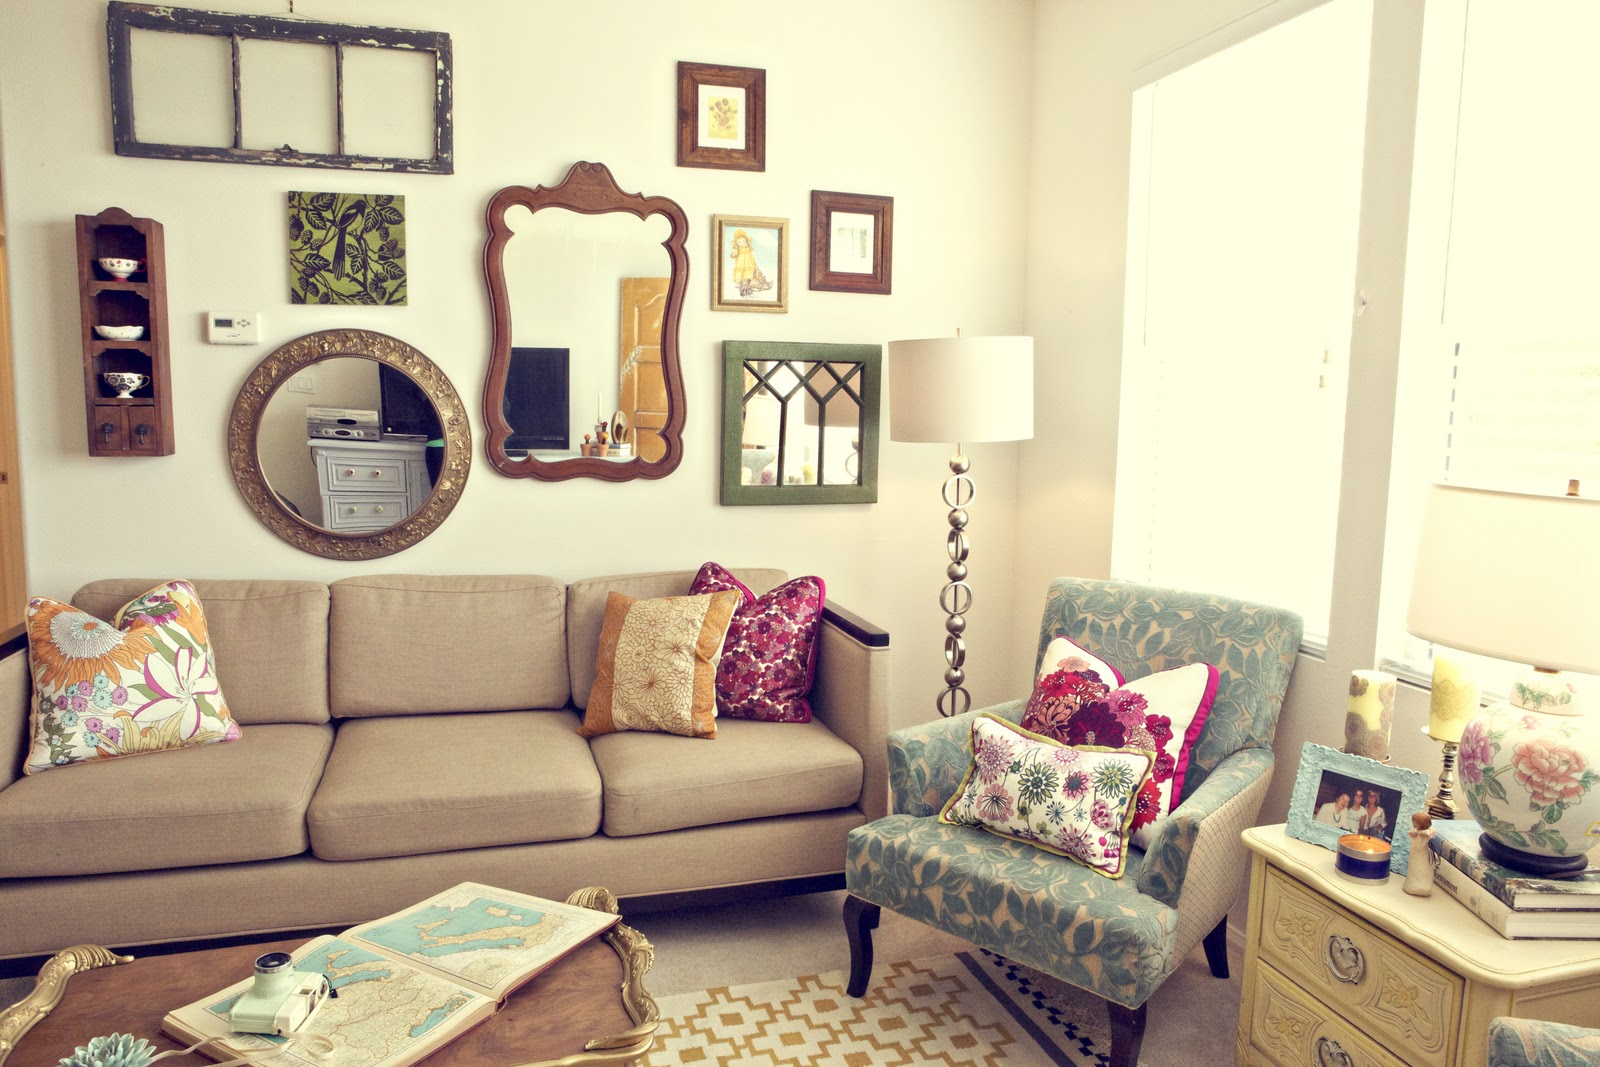 Beautifying Living Room Decor Through the Right Room Spots